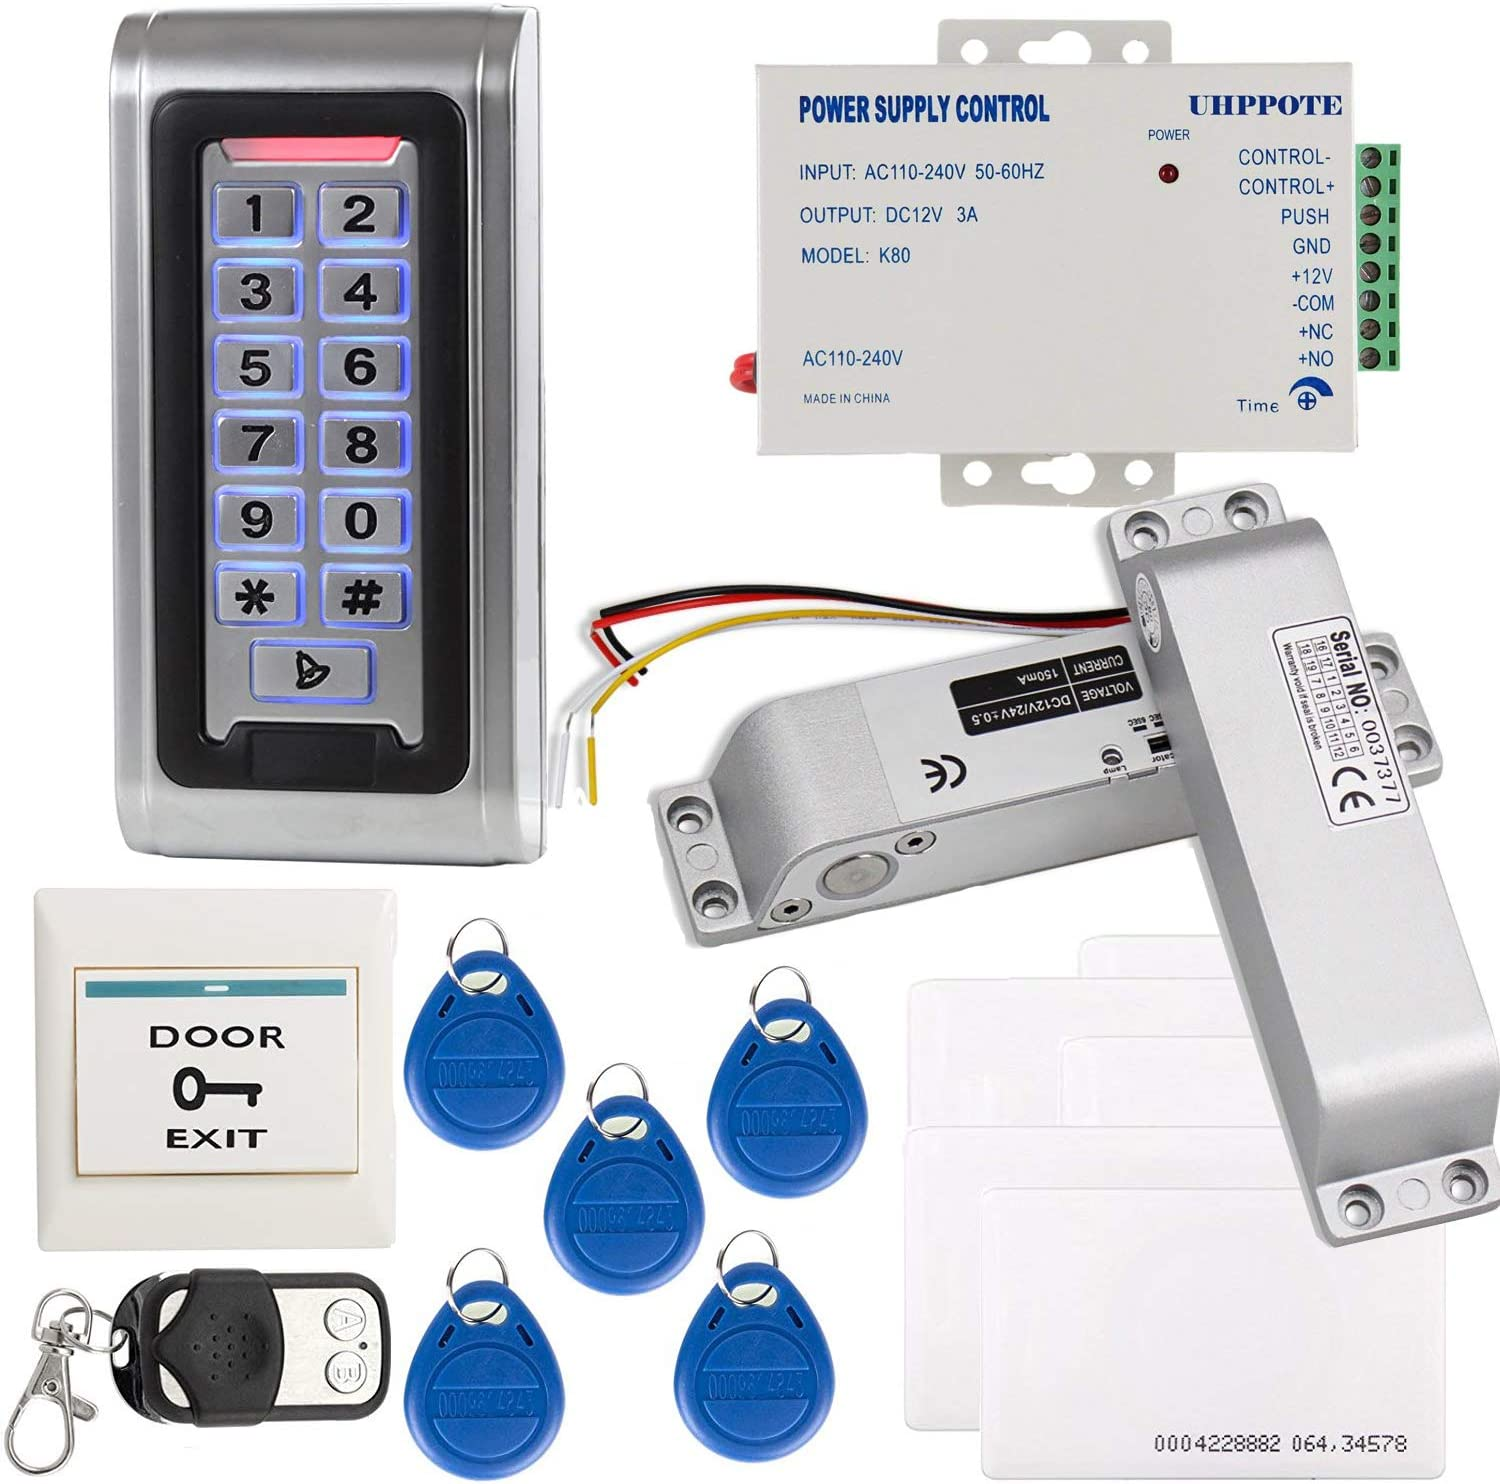 Full Complete Stand-alone Door Access Control System Kit With Electric Bolt Lock Power Supply Remote Control  Camera & Photo